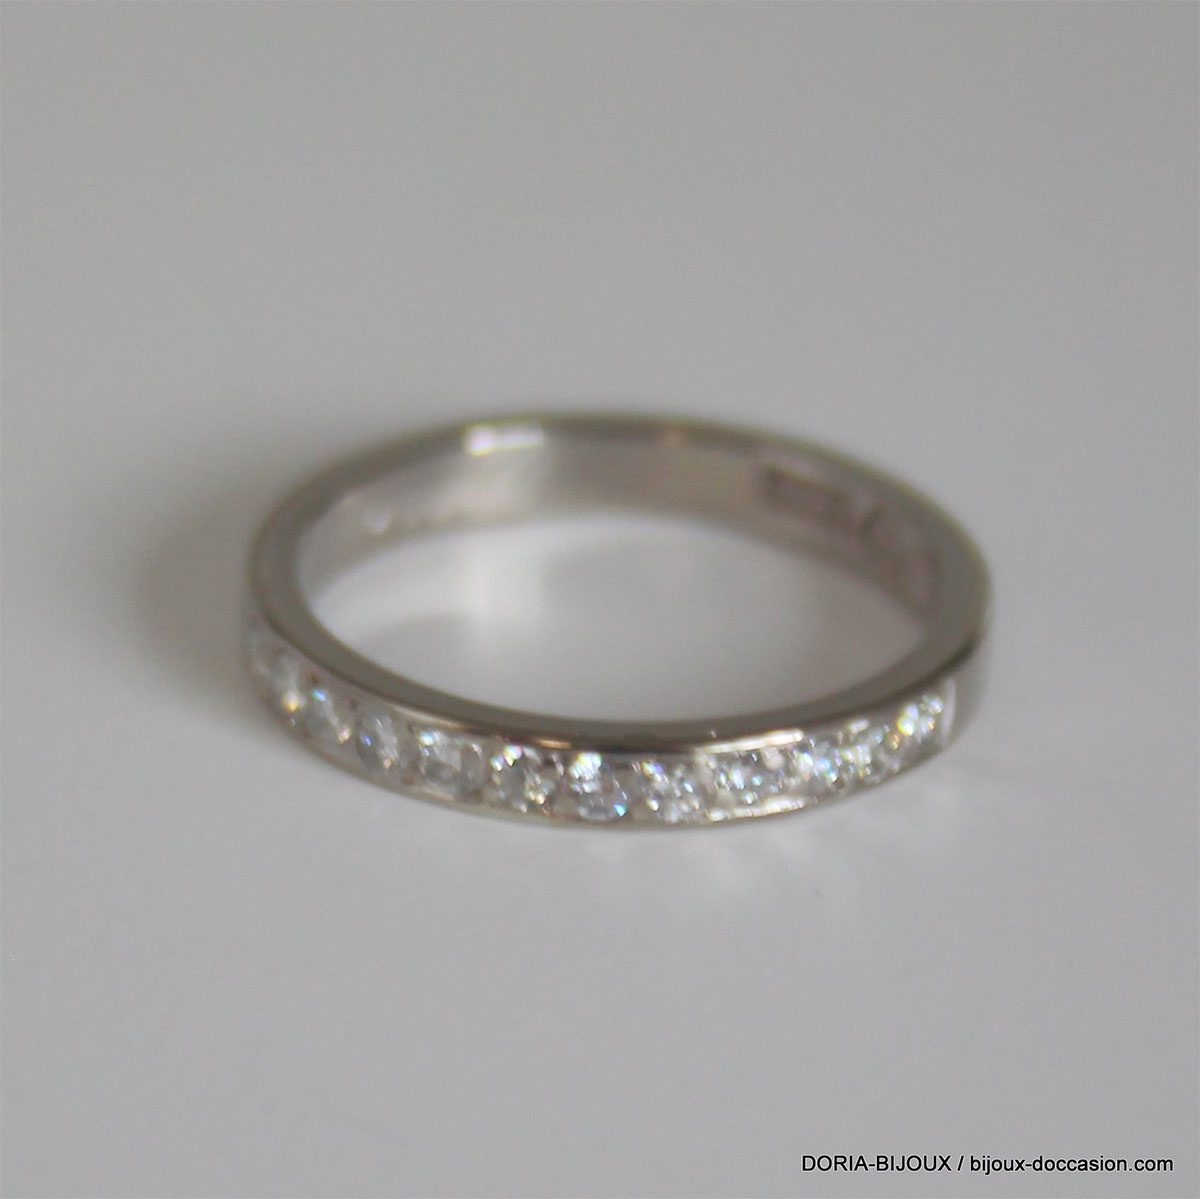 Bague Or Gris 18k 750  Diamants- 2.8grs - 52